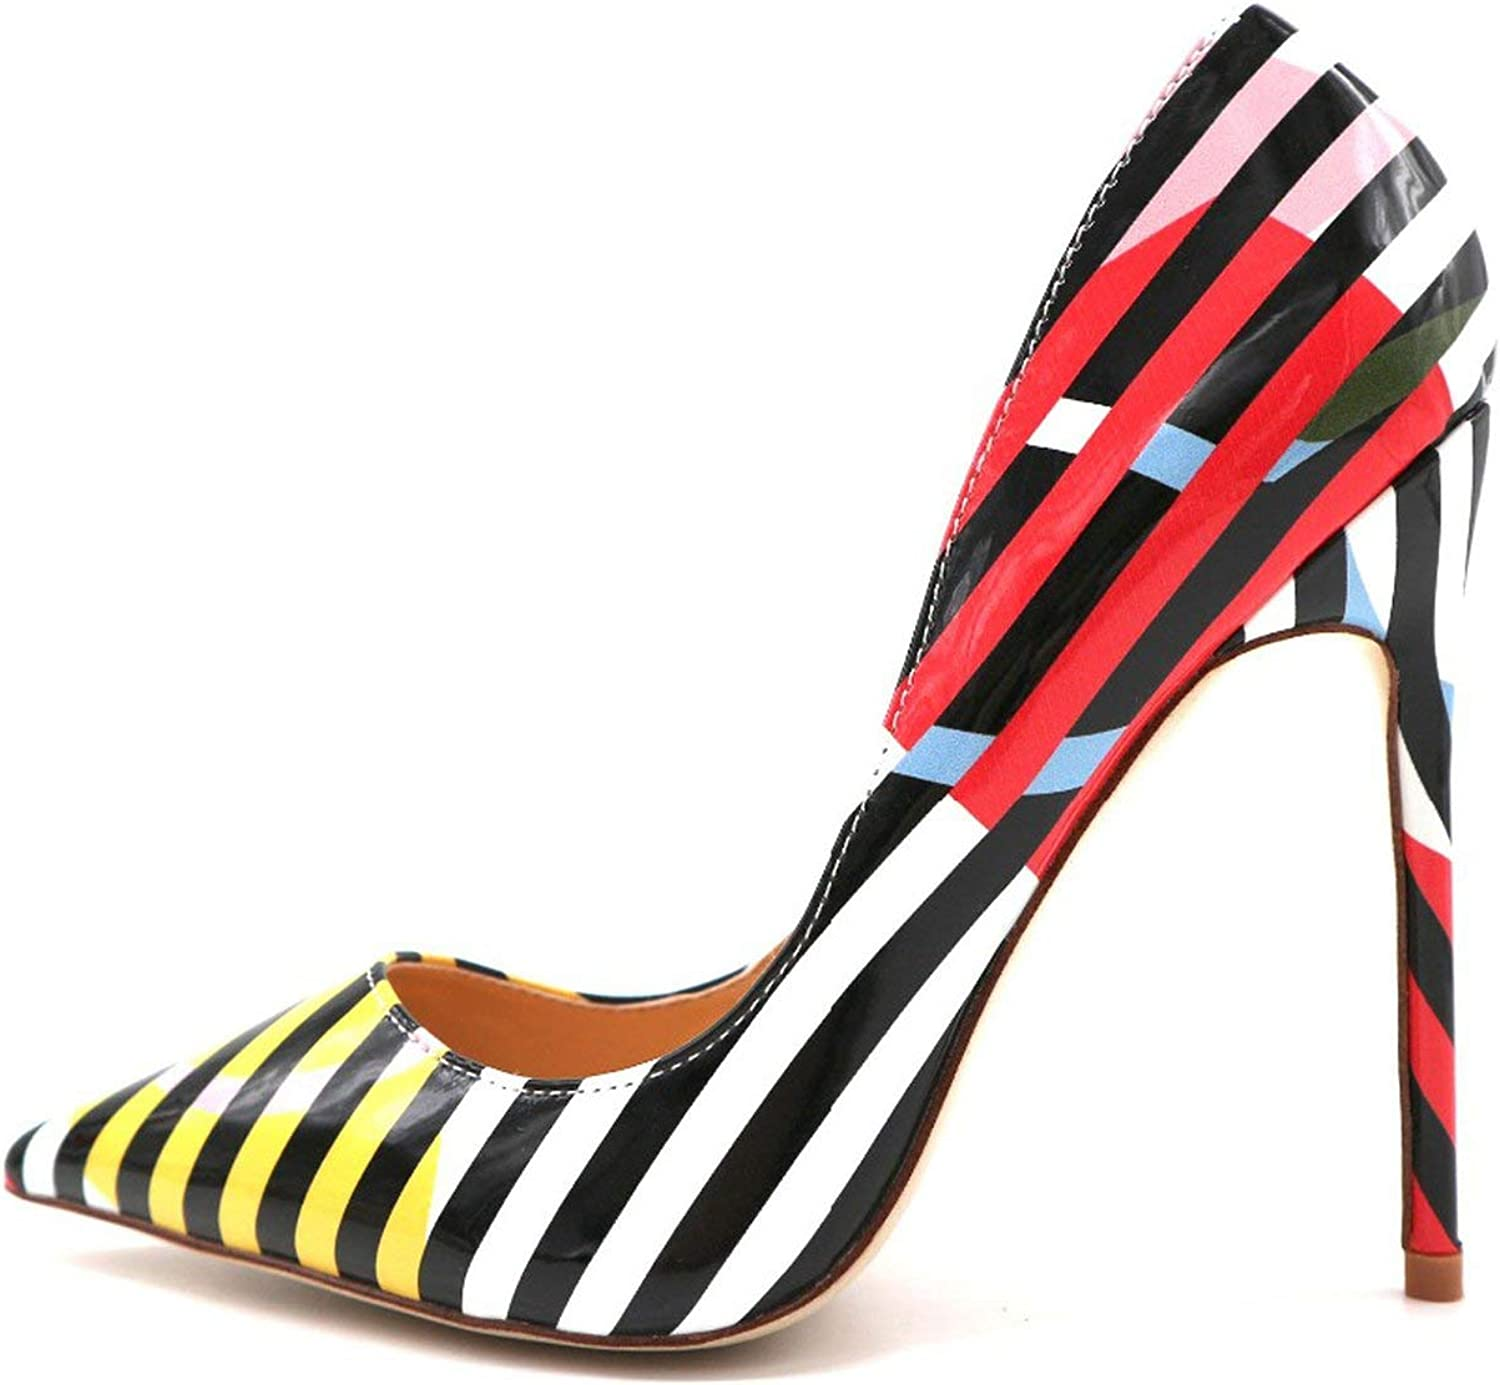 Designer White Black Stripe with Yellow Pink Circle Patent Leather Pointed Toe 12cm high Heel Pump Shoes